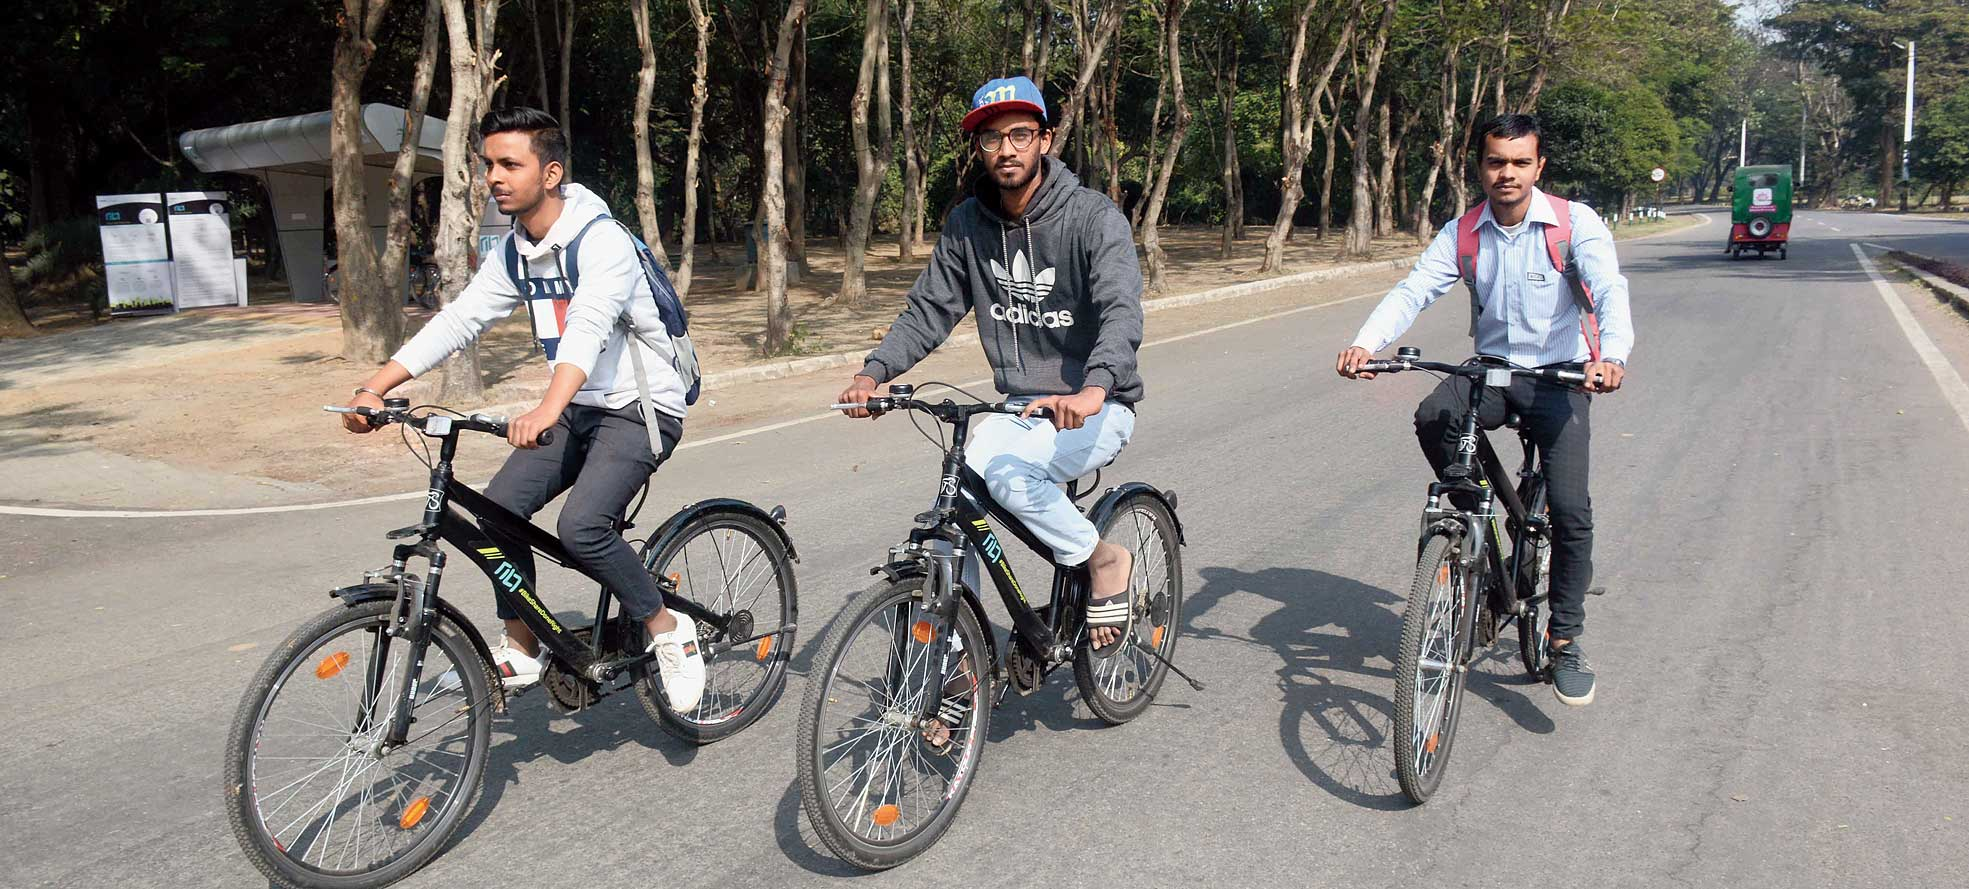 Riders at Jubilee Park in Jamshedpur earlier this week.